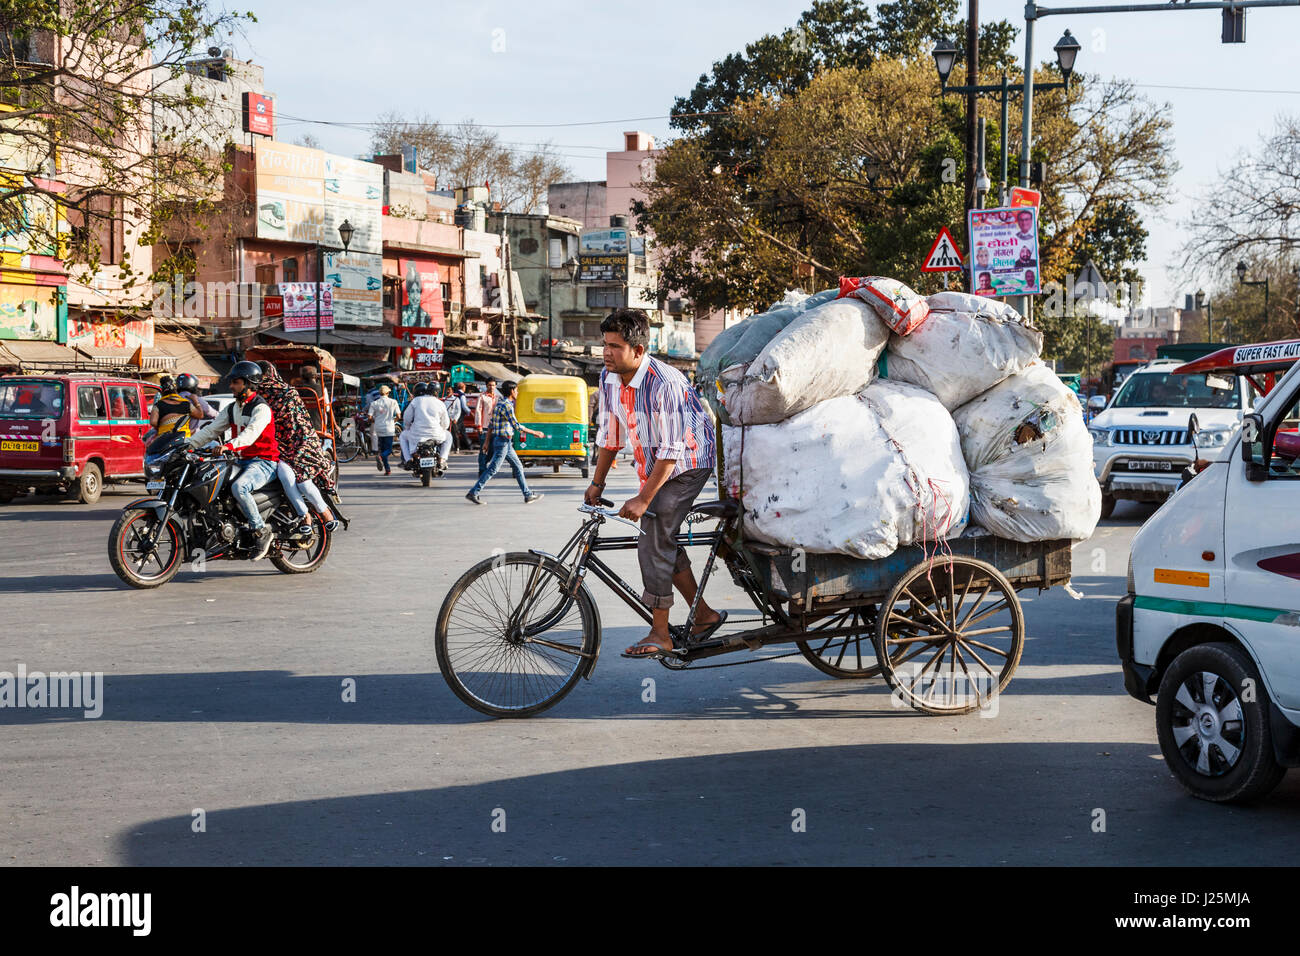 Local Indian man pedalling a tricycle carrying a large heavy load of sacks at a road junction in a busy street in - Stock Image